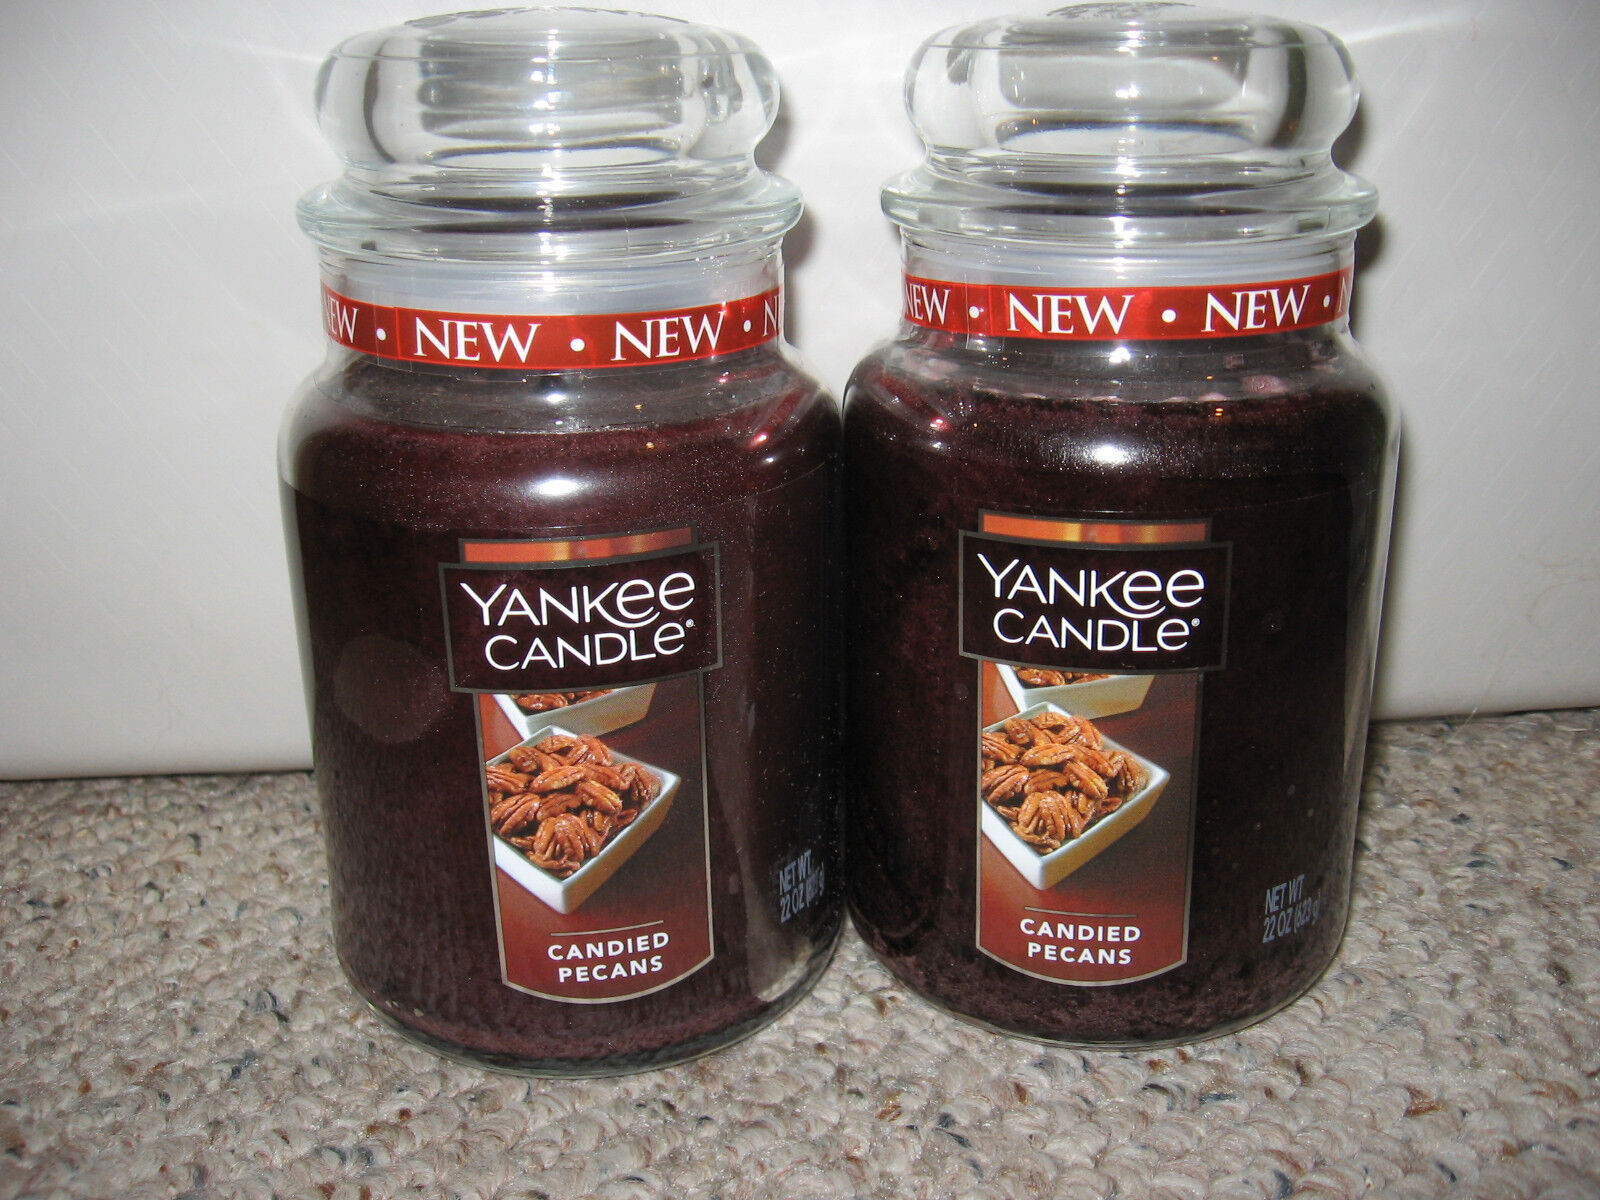 Yankee Candle CANDIED PECANS 22oz Large Jar Candle Set of 2 NEW